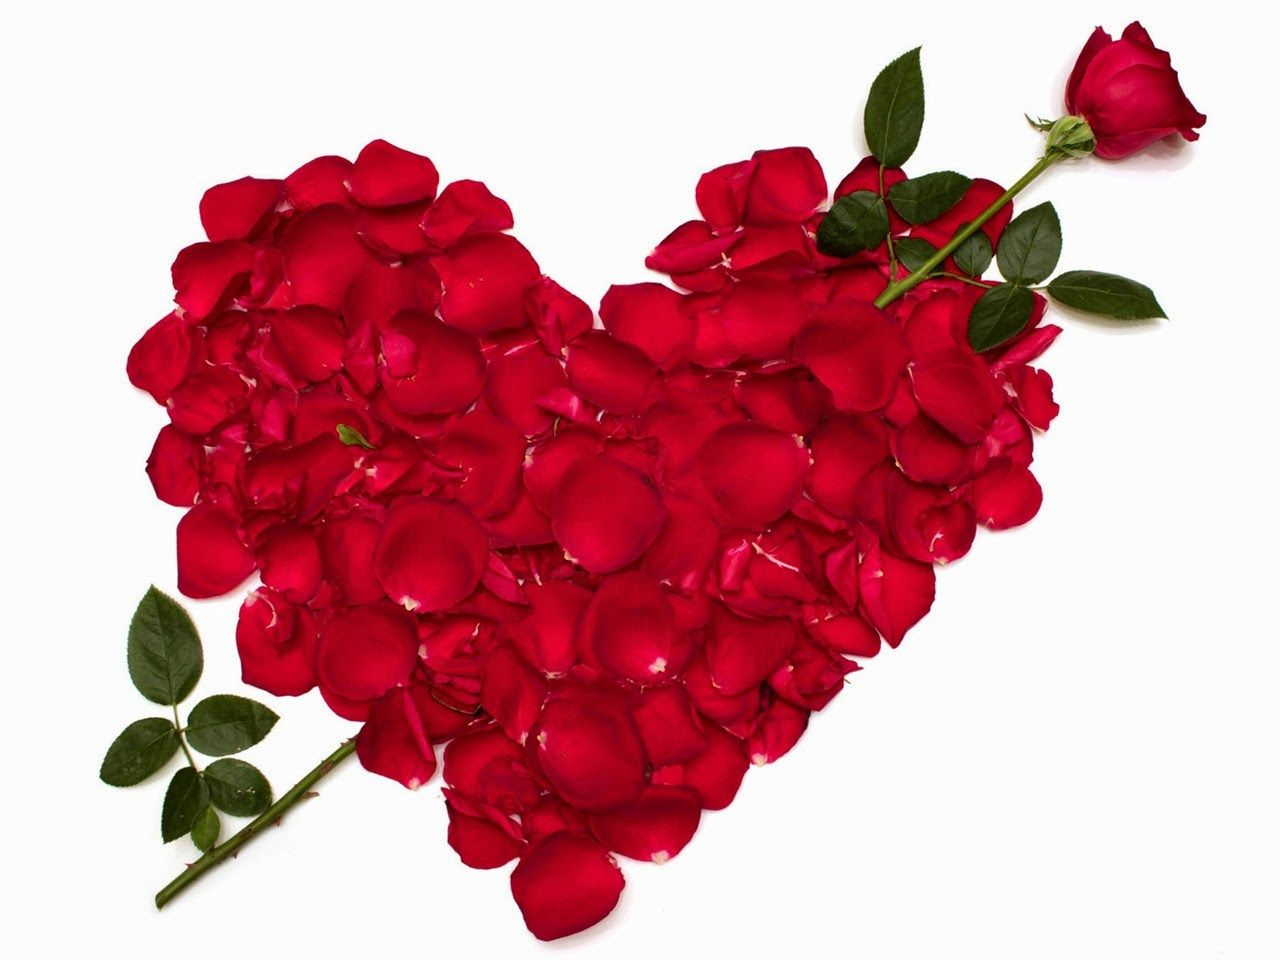 Happy Rose Day Hd Wallpapers 2018 Red Rose Petals Rose Day